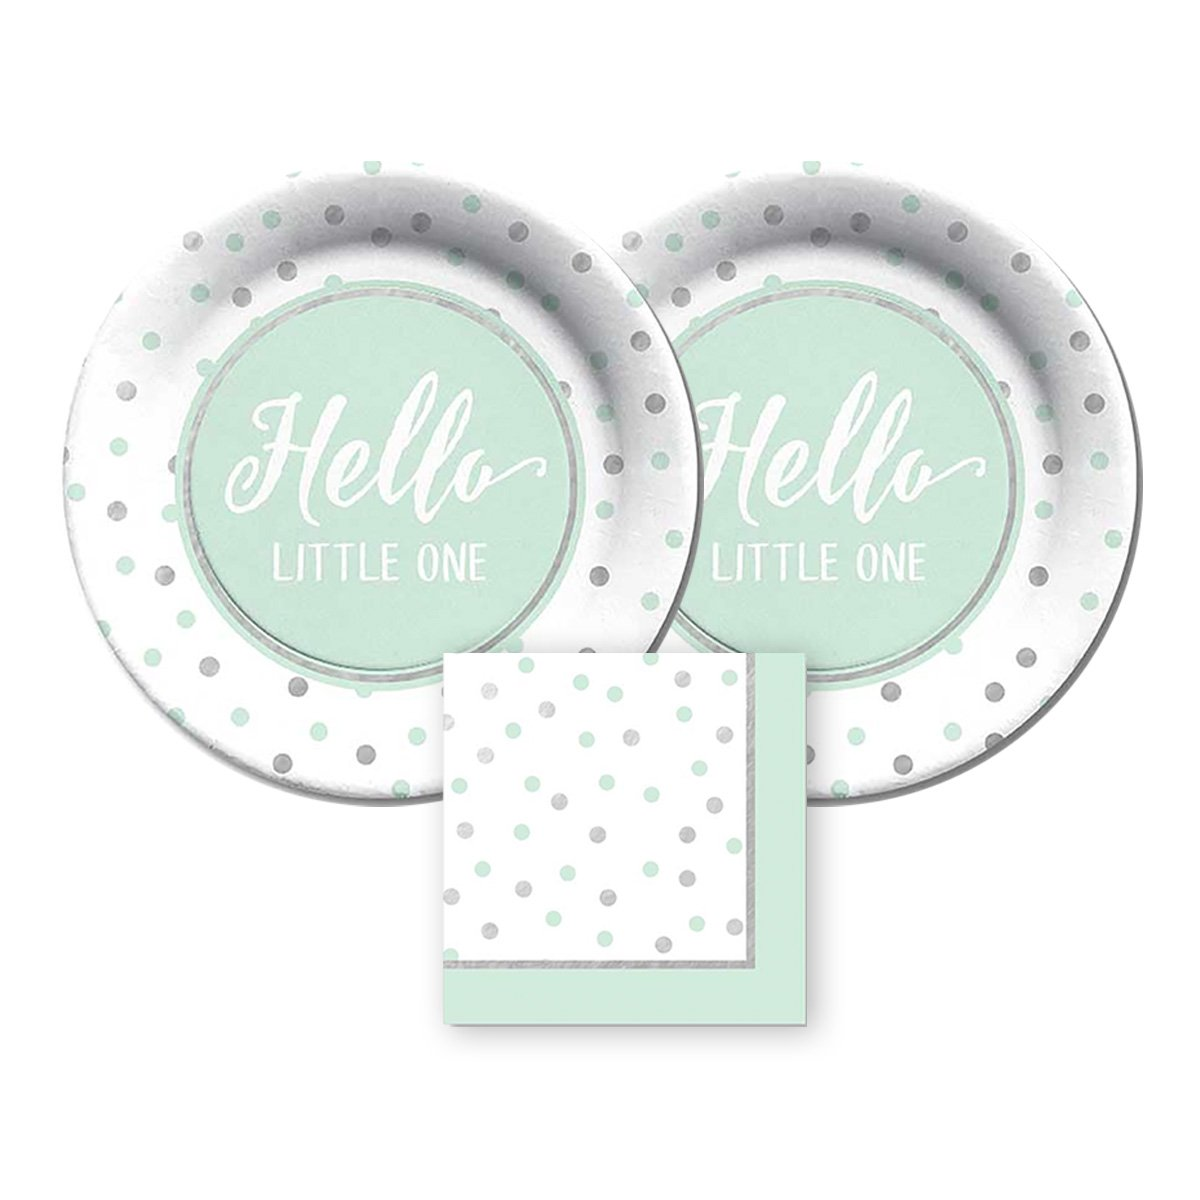 CR Gibson Hello Little One by gebracht Pappteller und Servietten, bundle- 3 Elemente mintgrün